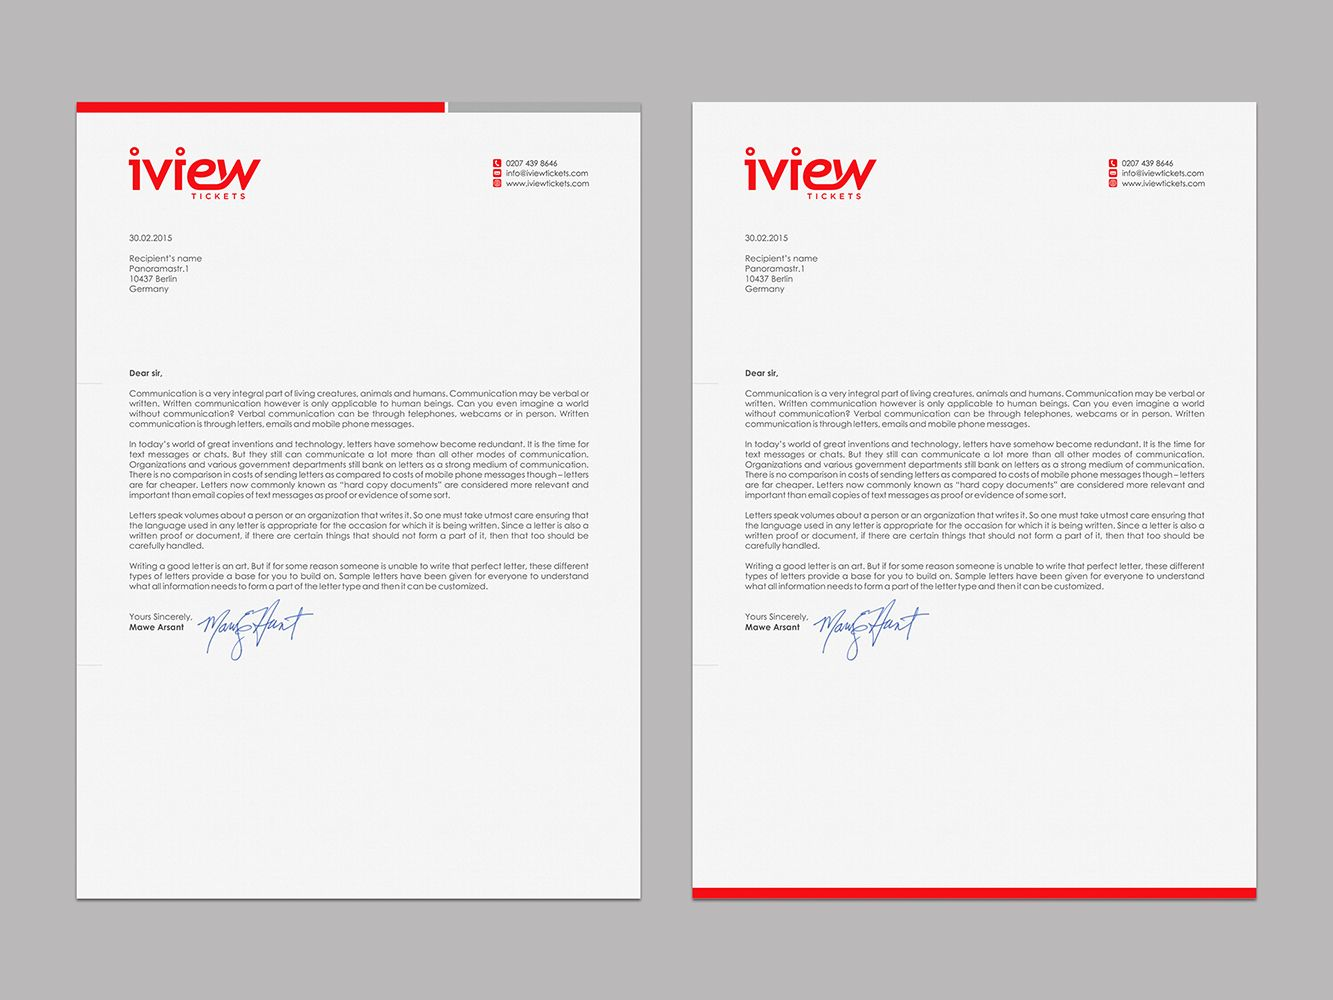 Letterhead Design By Logodentity For Letter Head For Use On Daily